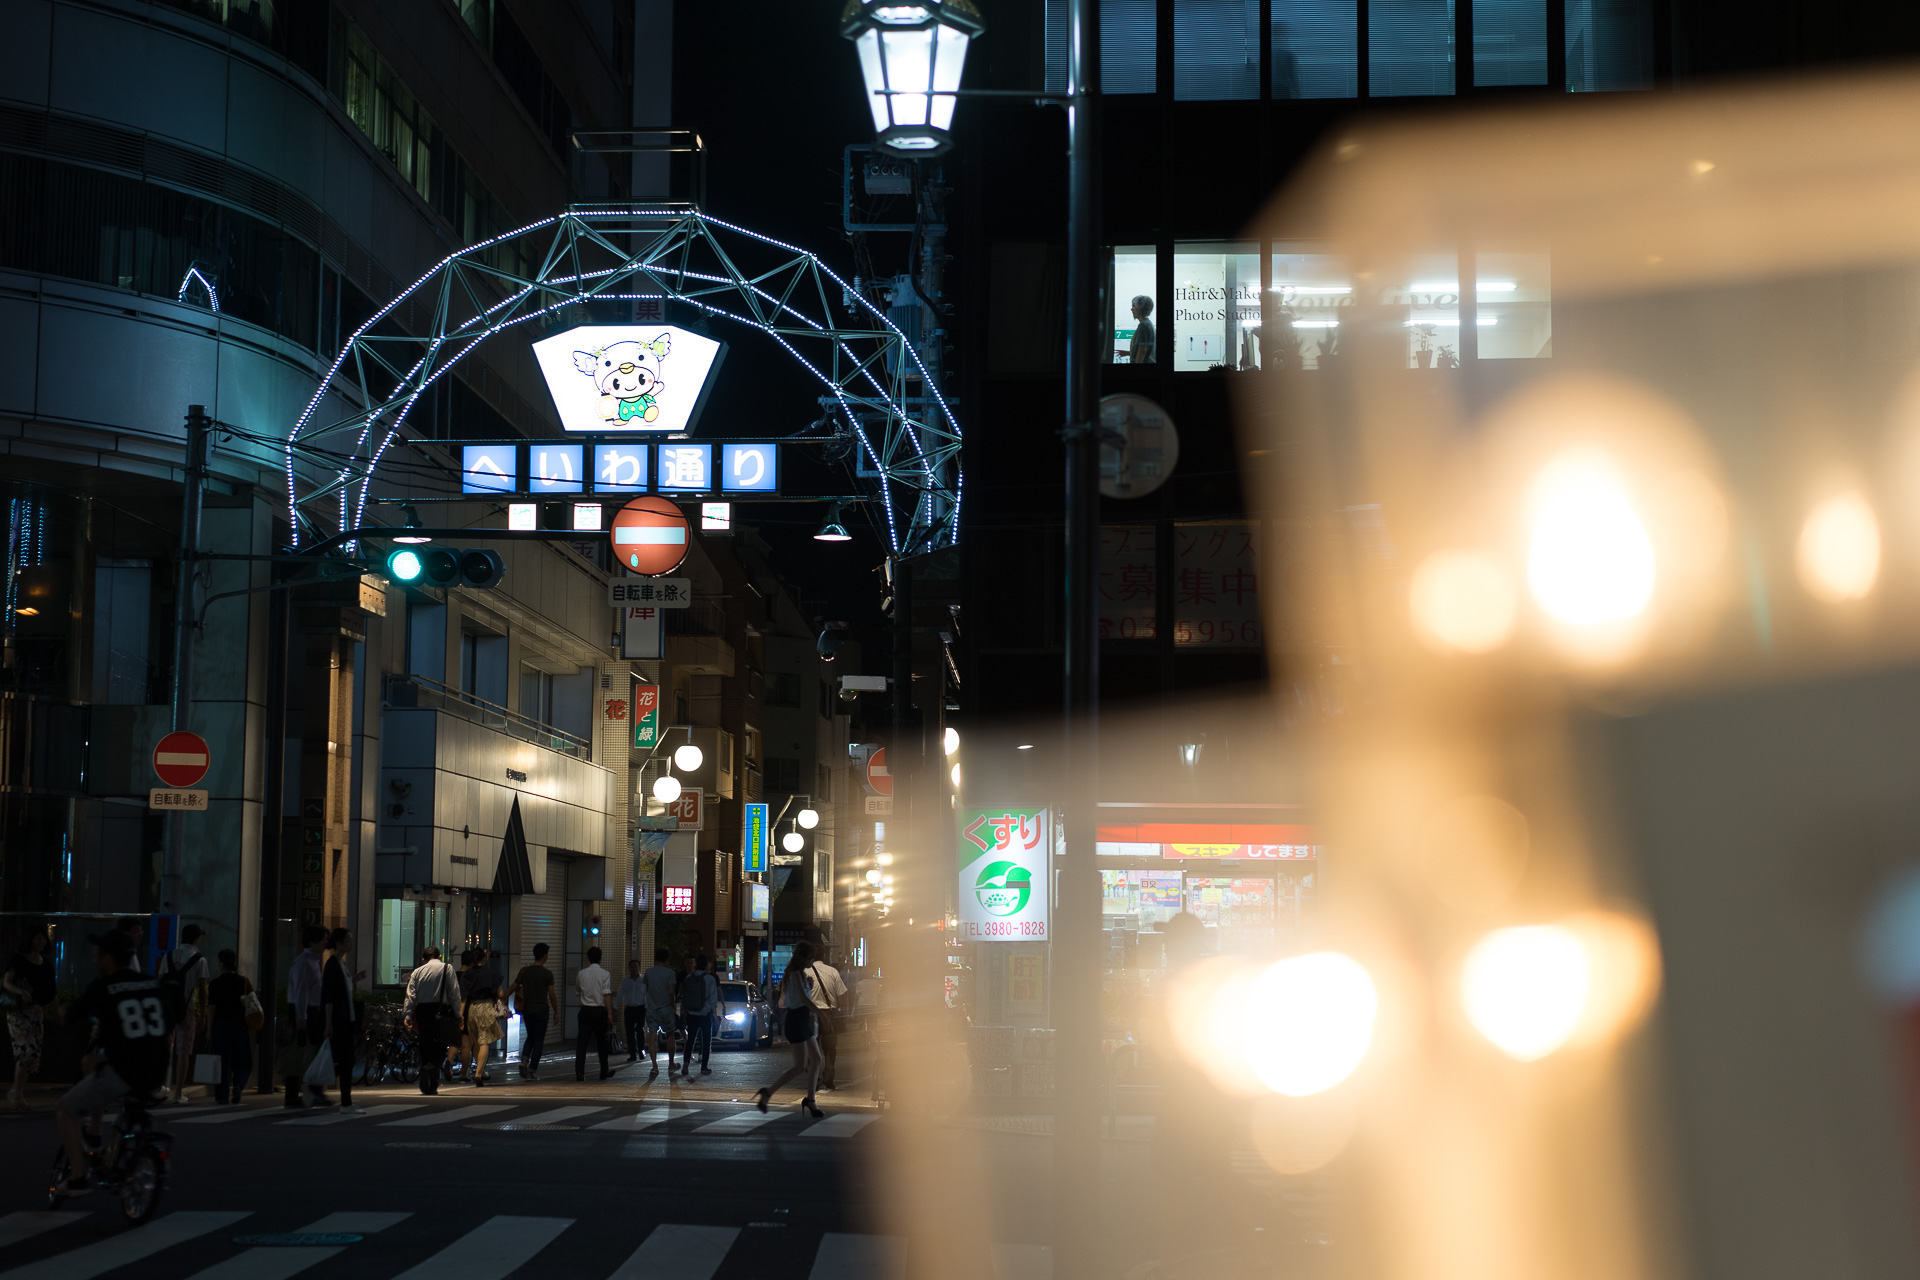 商店街 SONY α7II, Sony FE Carl Zeiss Sonnar T* 55mm F1.8 ZA